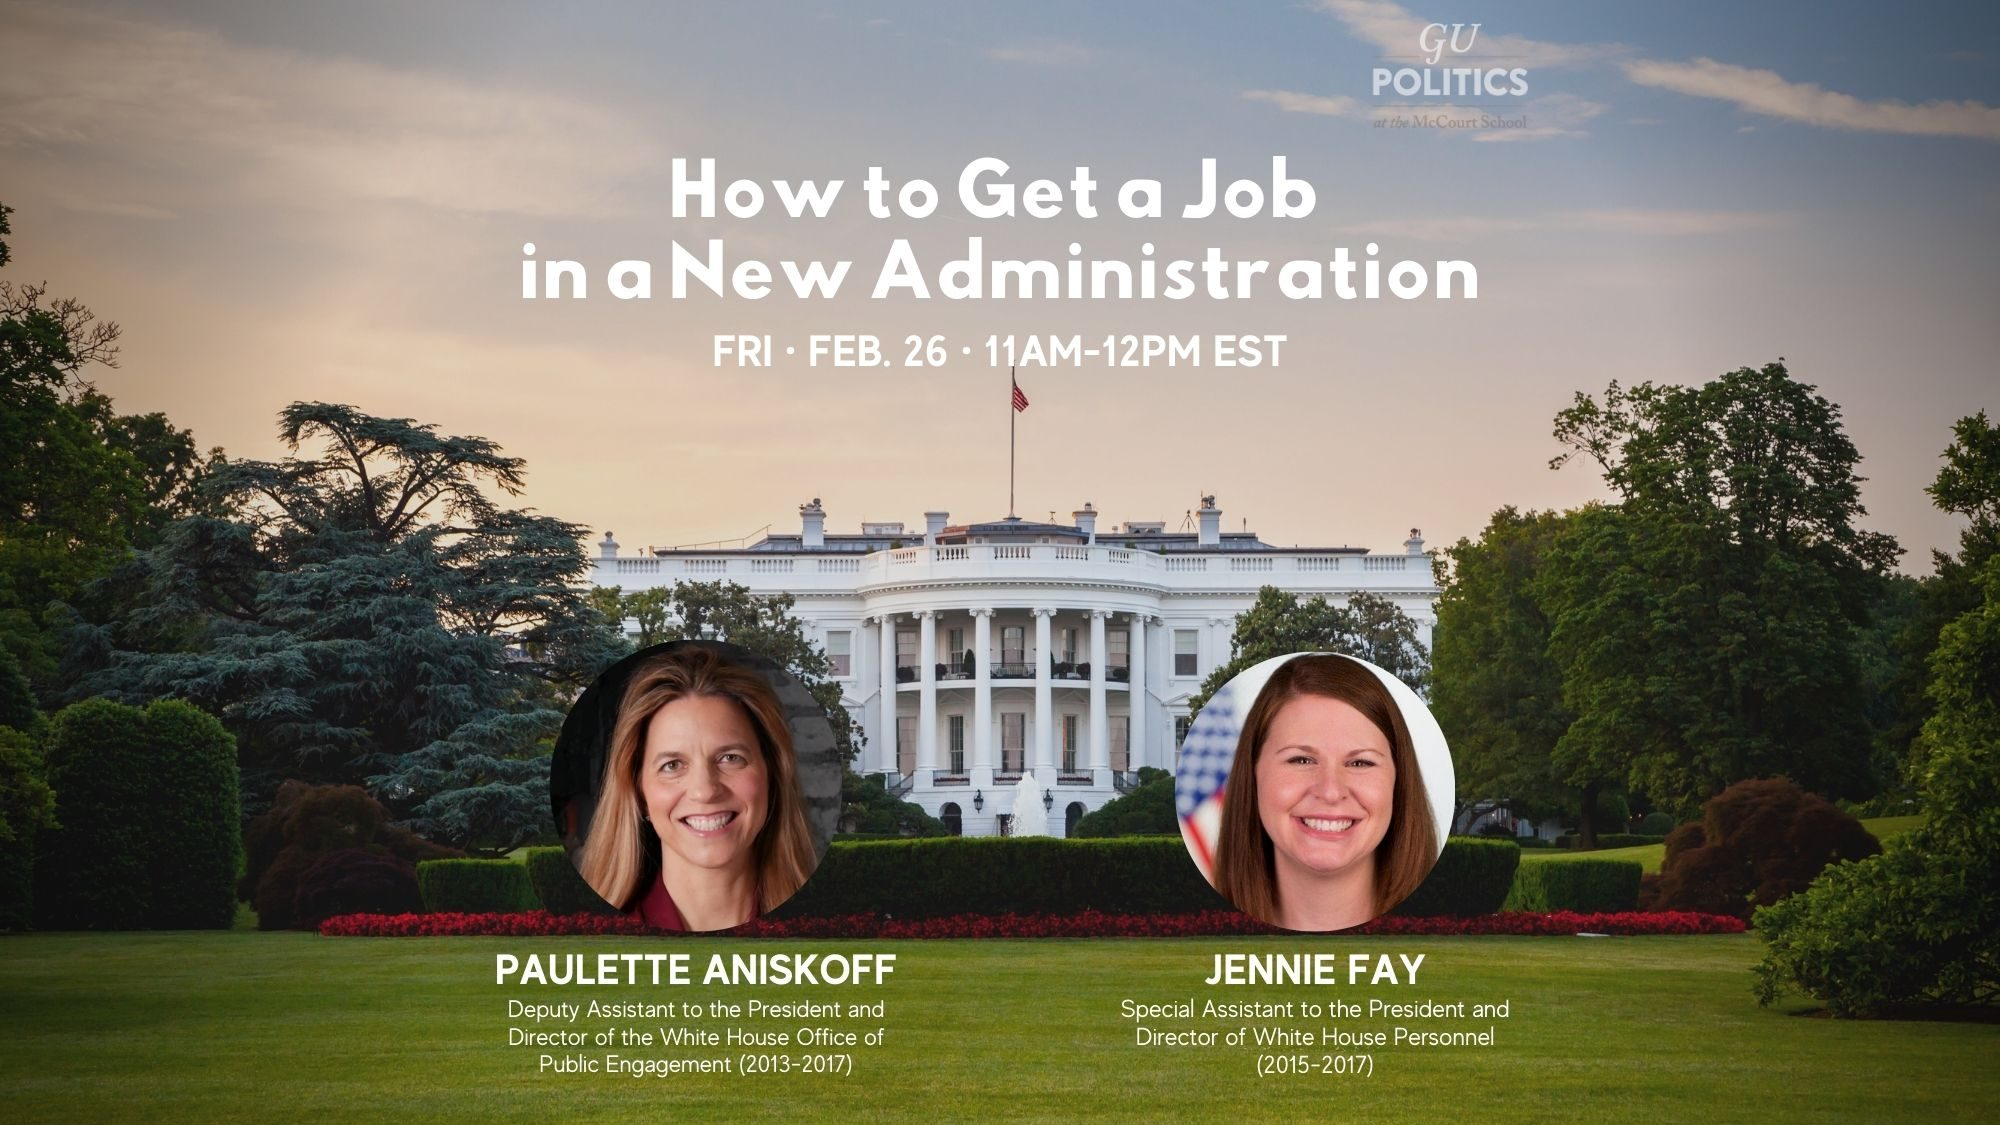 This session will be led by Paulette Aniskoff, Deputy Assistant to the President and Director of the White House Office of Public Engagement (2013-2017), and Jennie Fay, Special Assistant to the President and Director of White House Personnel (2015-2017).